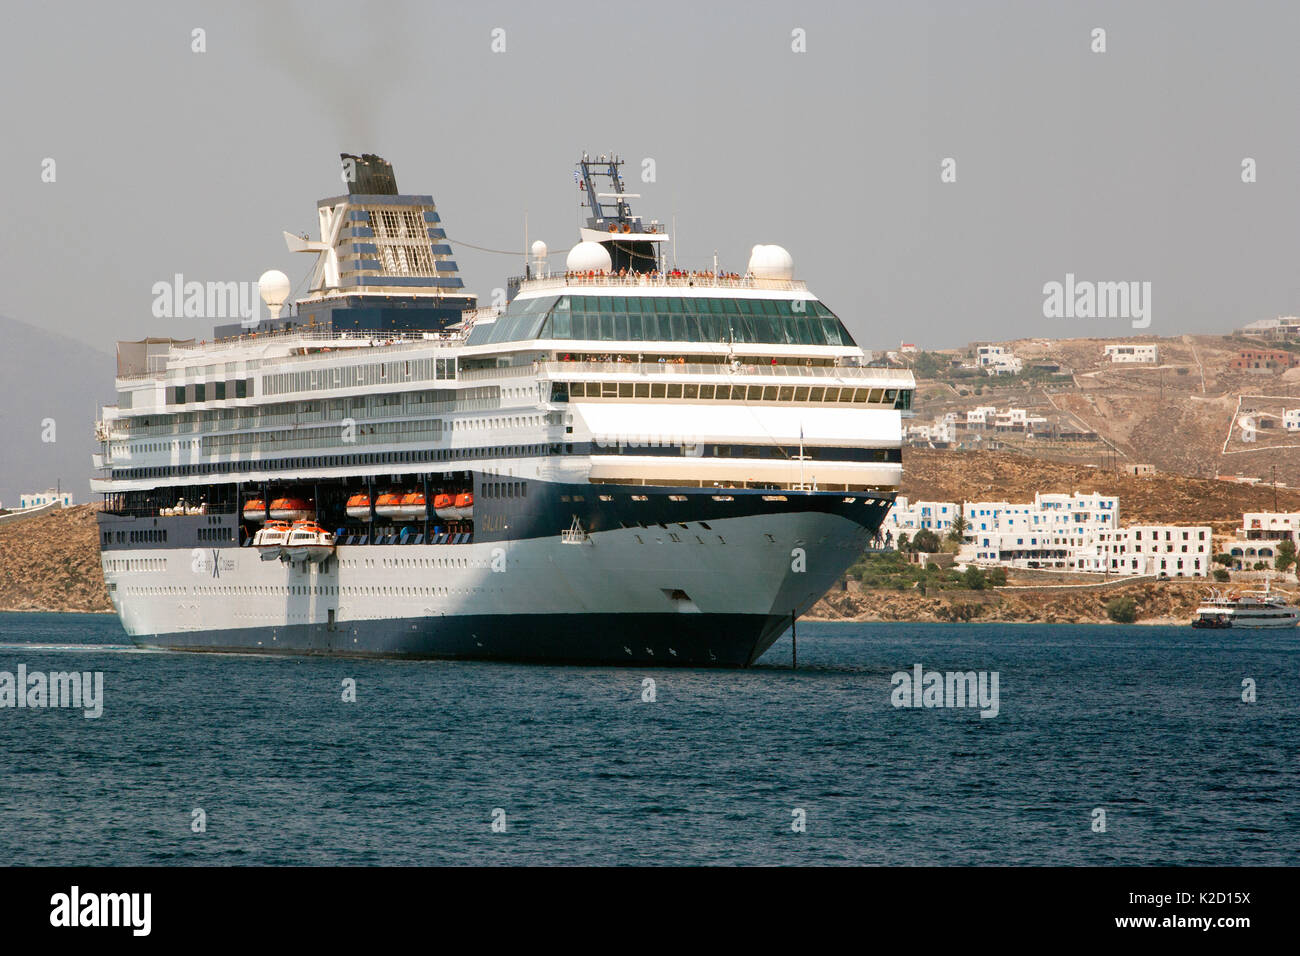 Cruise ship from 'Celebrity Cruises' anchored outside Mykonos Town since it is unable to enter the harbor due to its size. Mykonos Island, Cyclades, Aegean Sea, Mediterranean, Greece, August 2007. - Stock Image